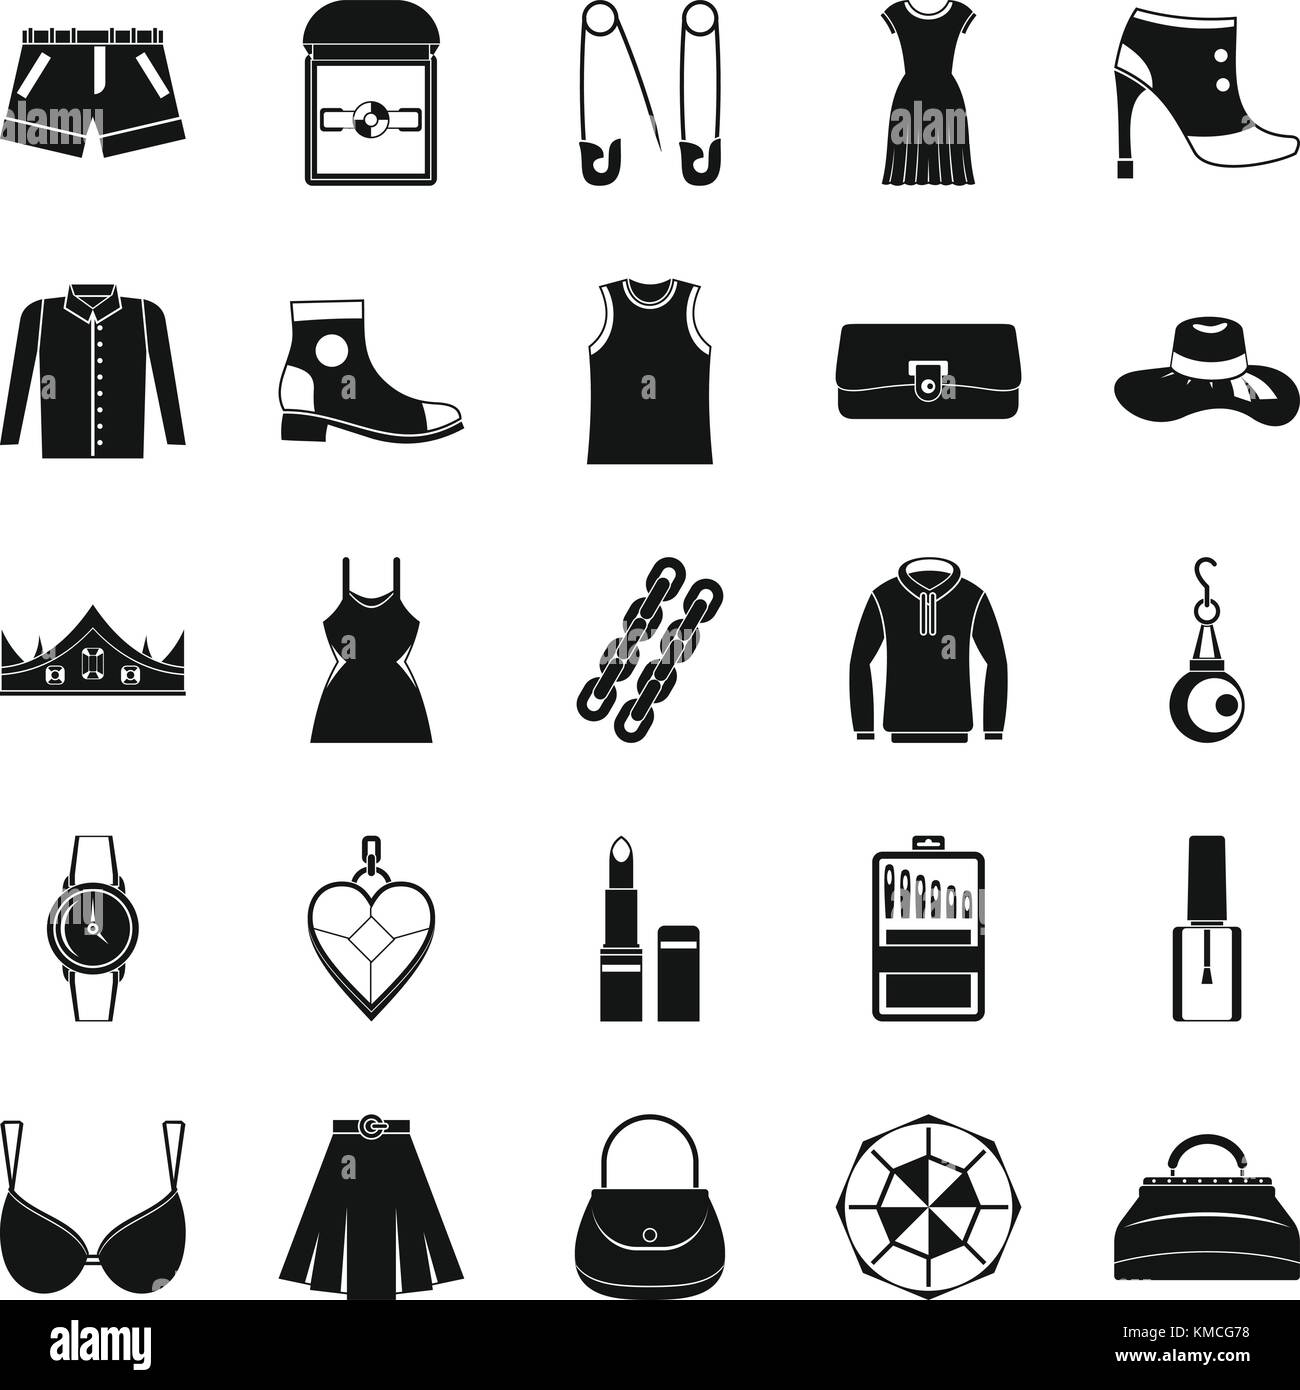 Possessions icons set, simple style - Stock Image